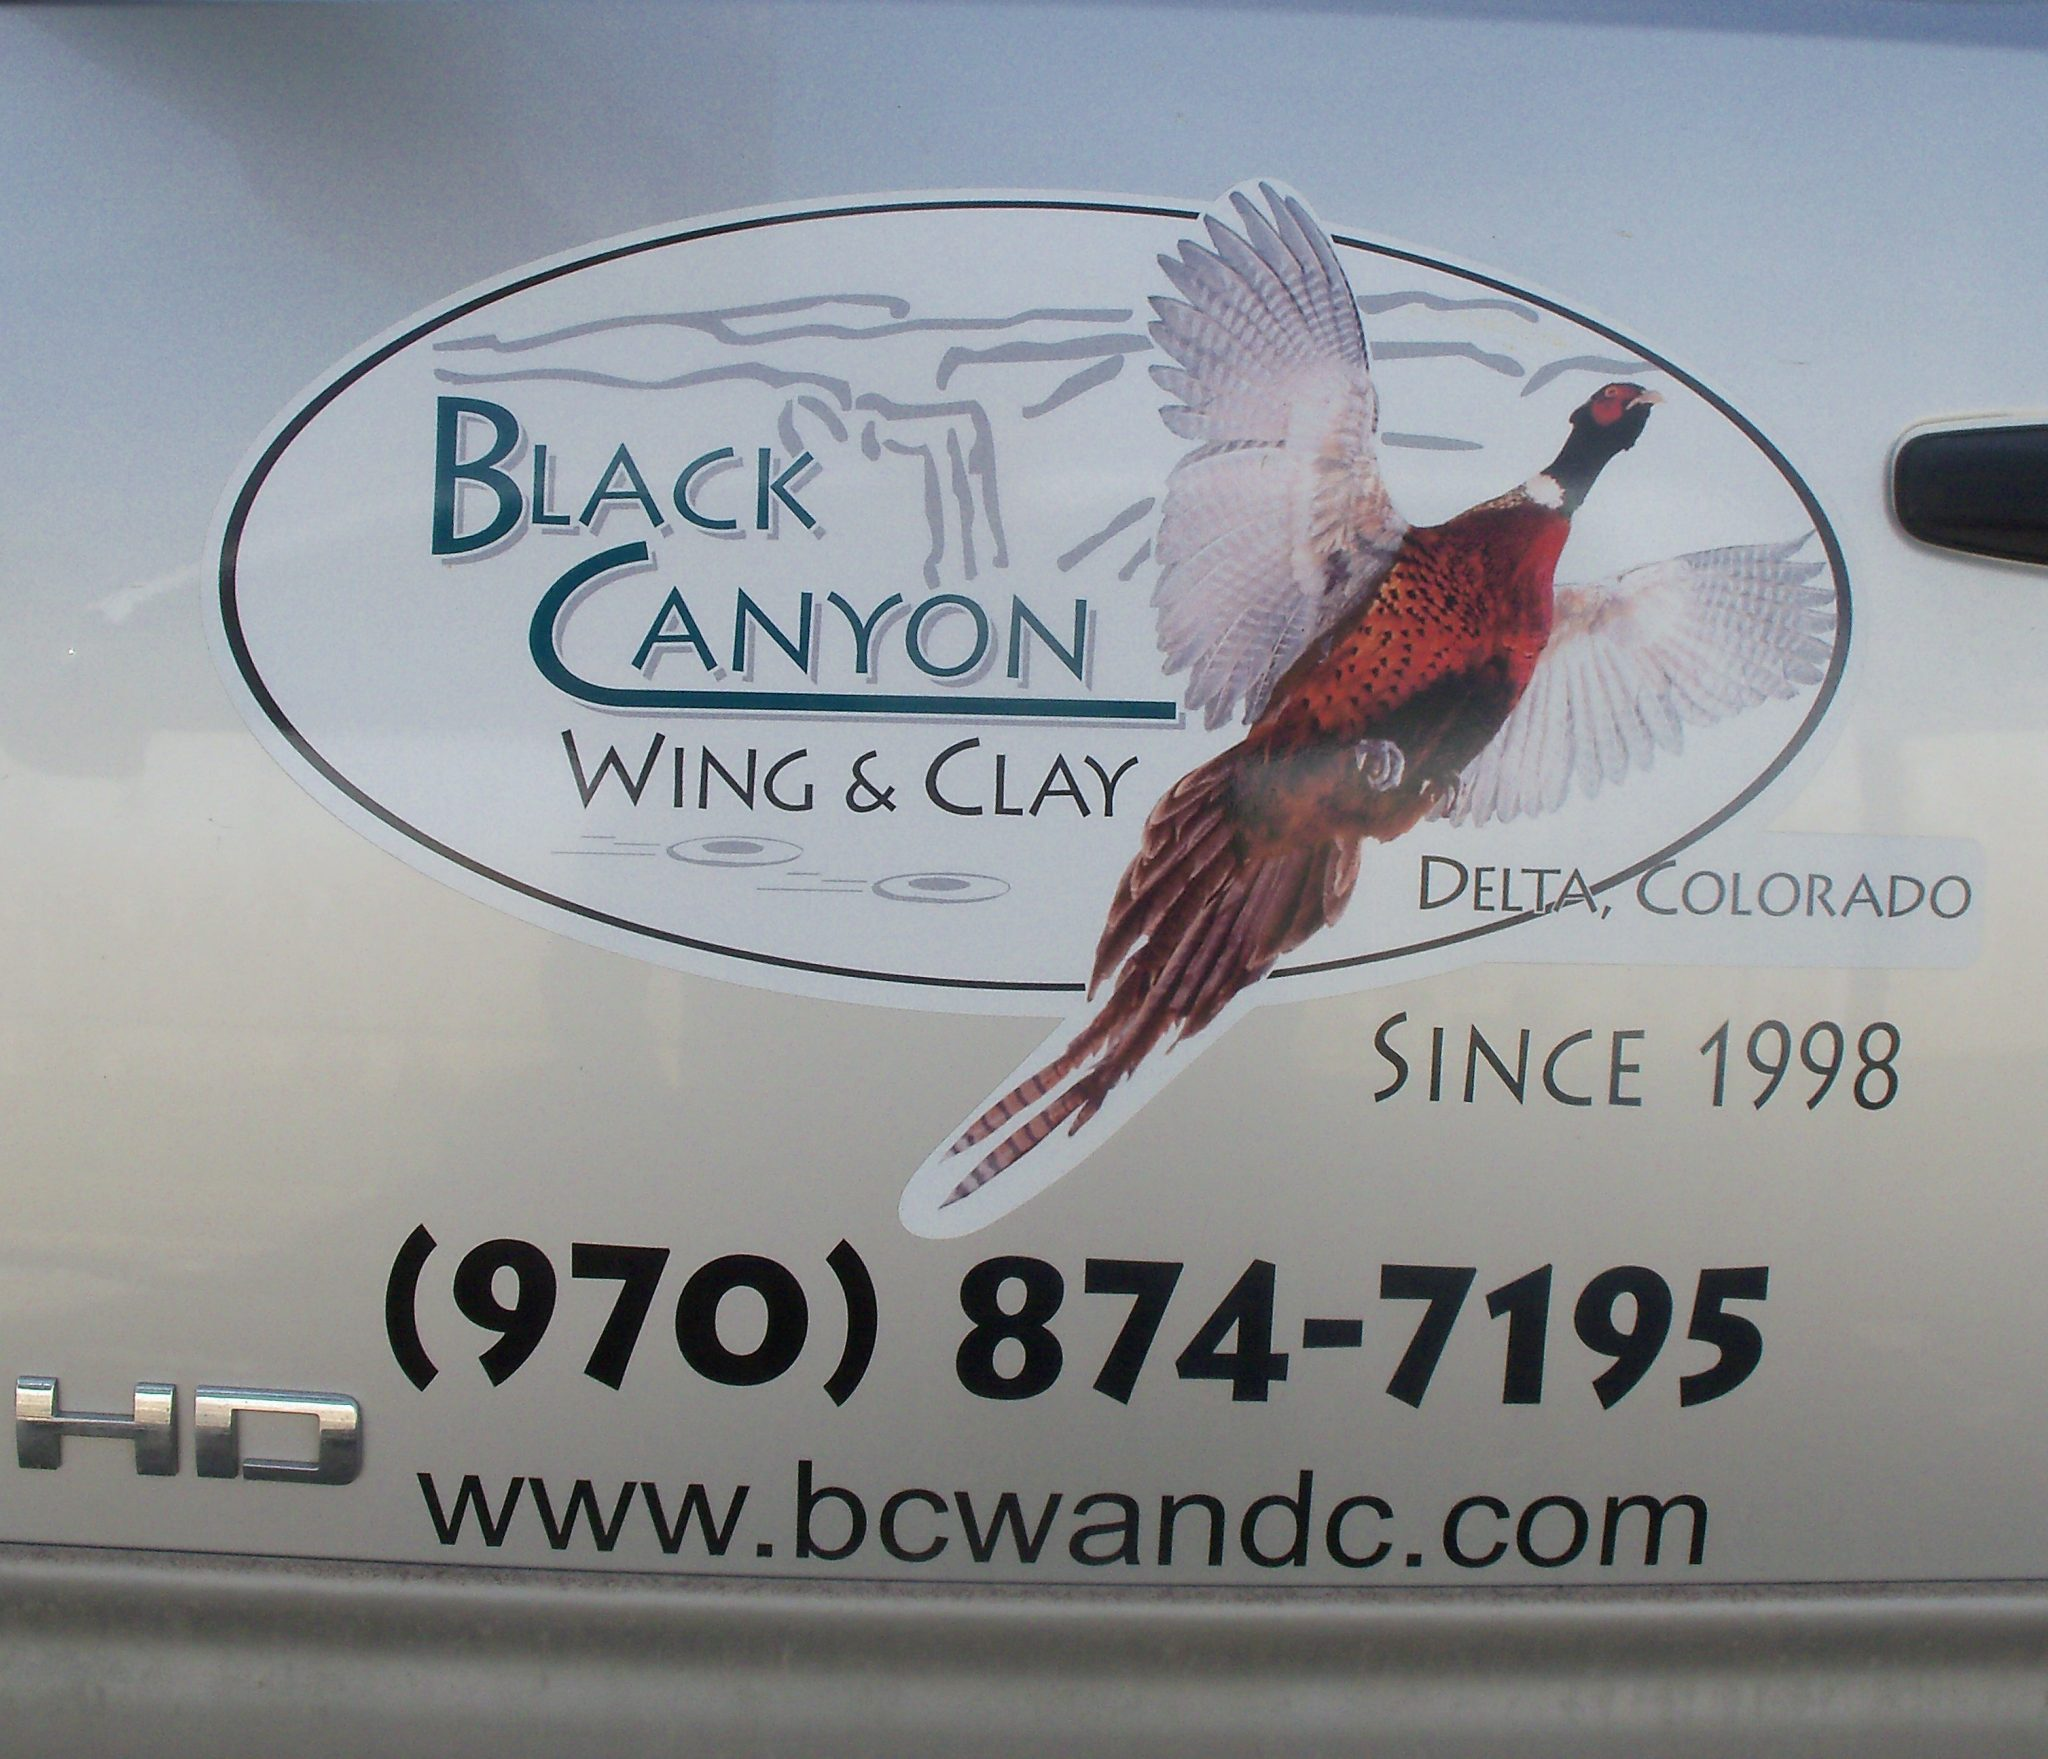 Black Canyon Wing and Clay Shooting Resort - Delta, CO.